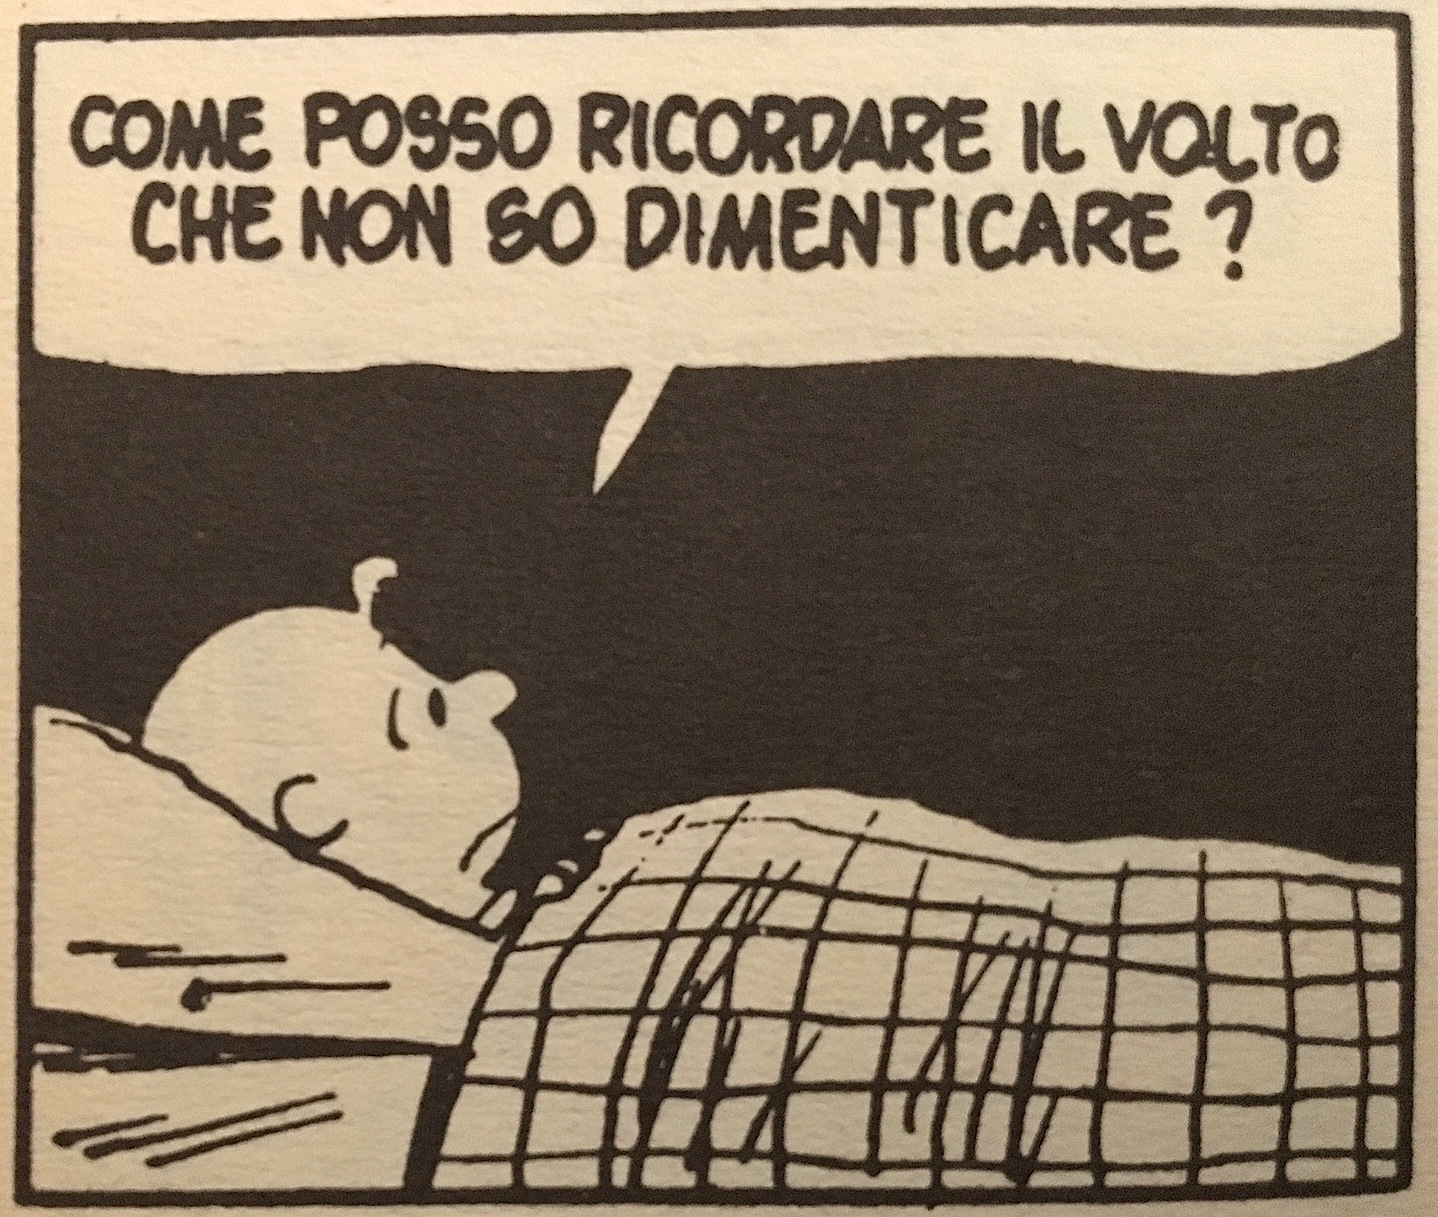 Charlie Brown amante cortese (Mani bucate, 13)